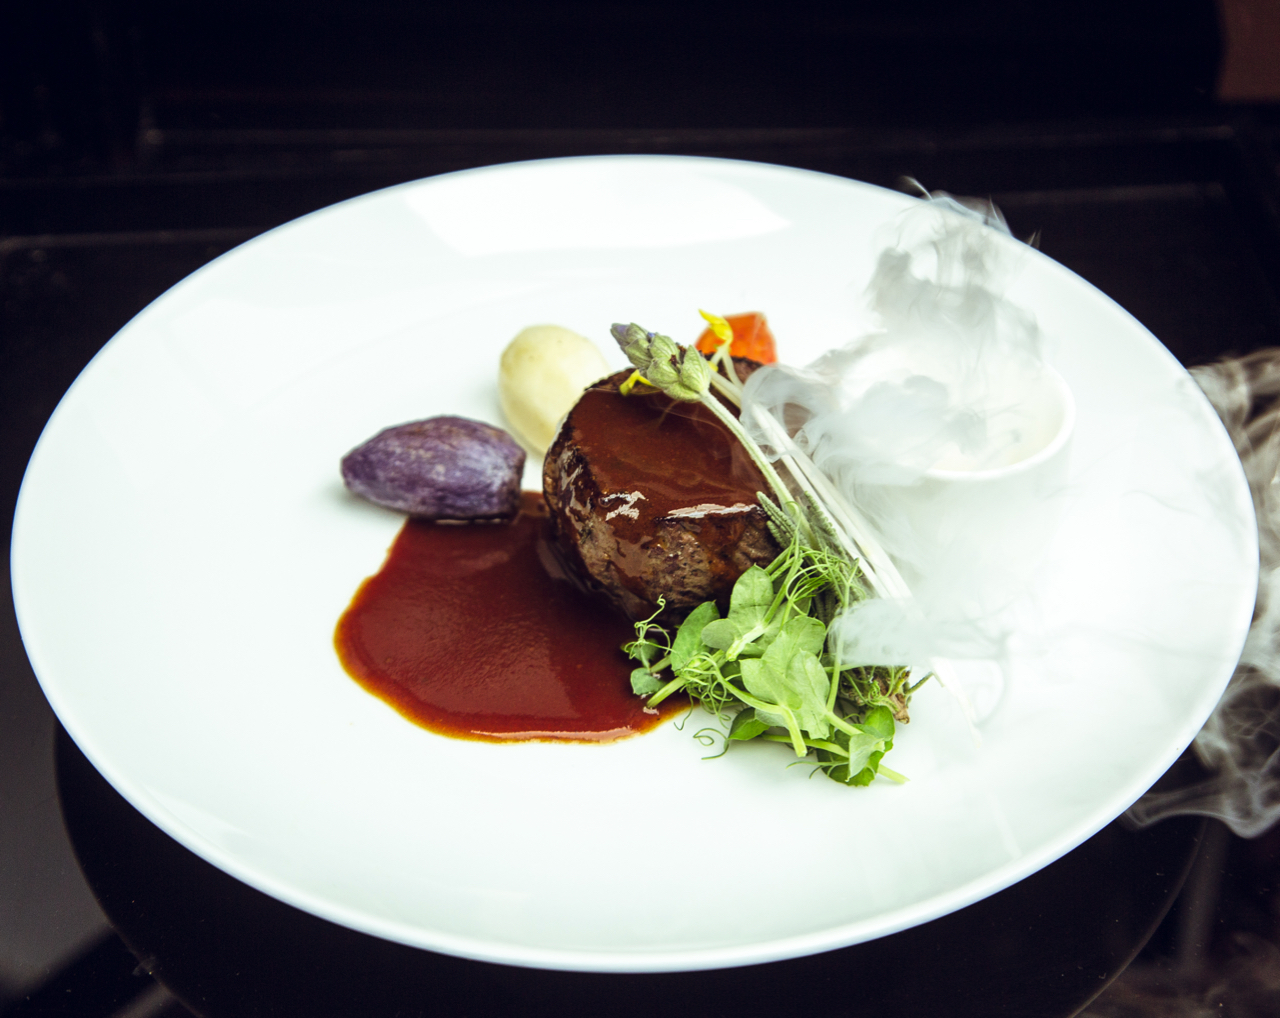 VENISON LOIN, Paired with The Macallan M (Under Cloche, Sauced Tableside,) Scotch Whisky & Herb Fog, Sauce Perigueux, Vegetable Bouquetiere